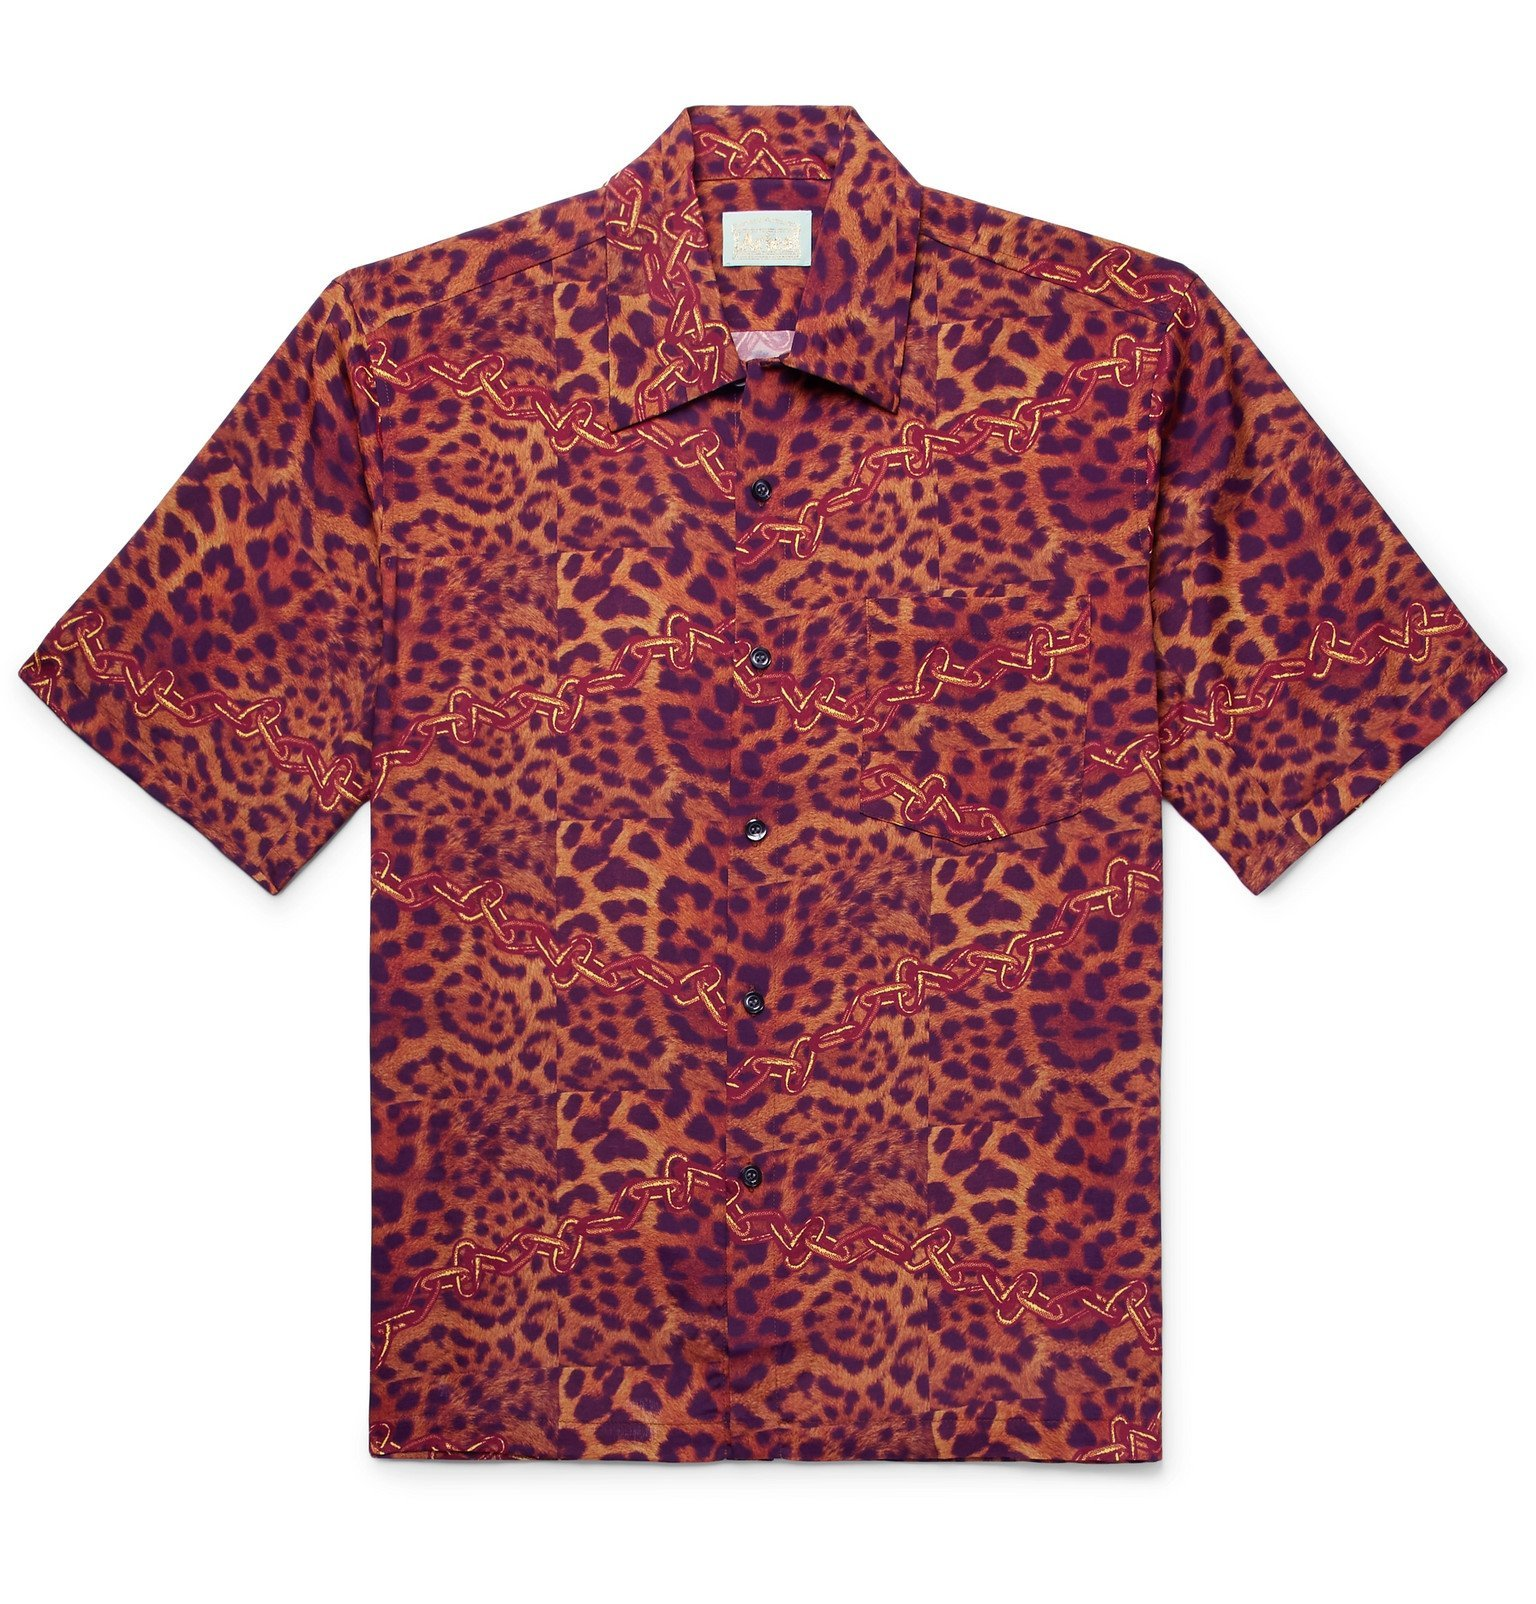 Aries - Printed Woven Shirt - Red